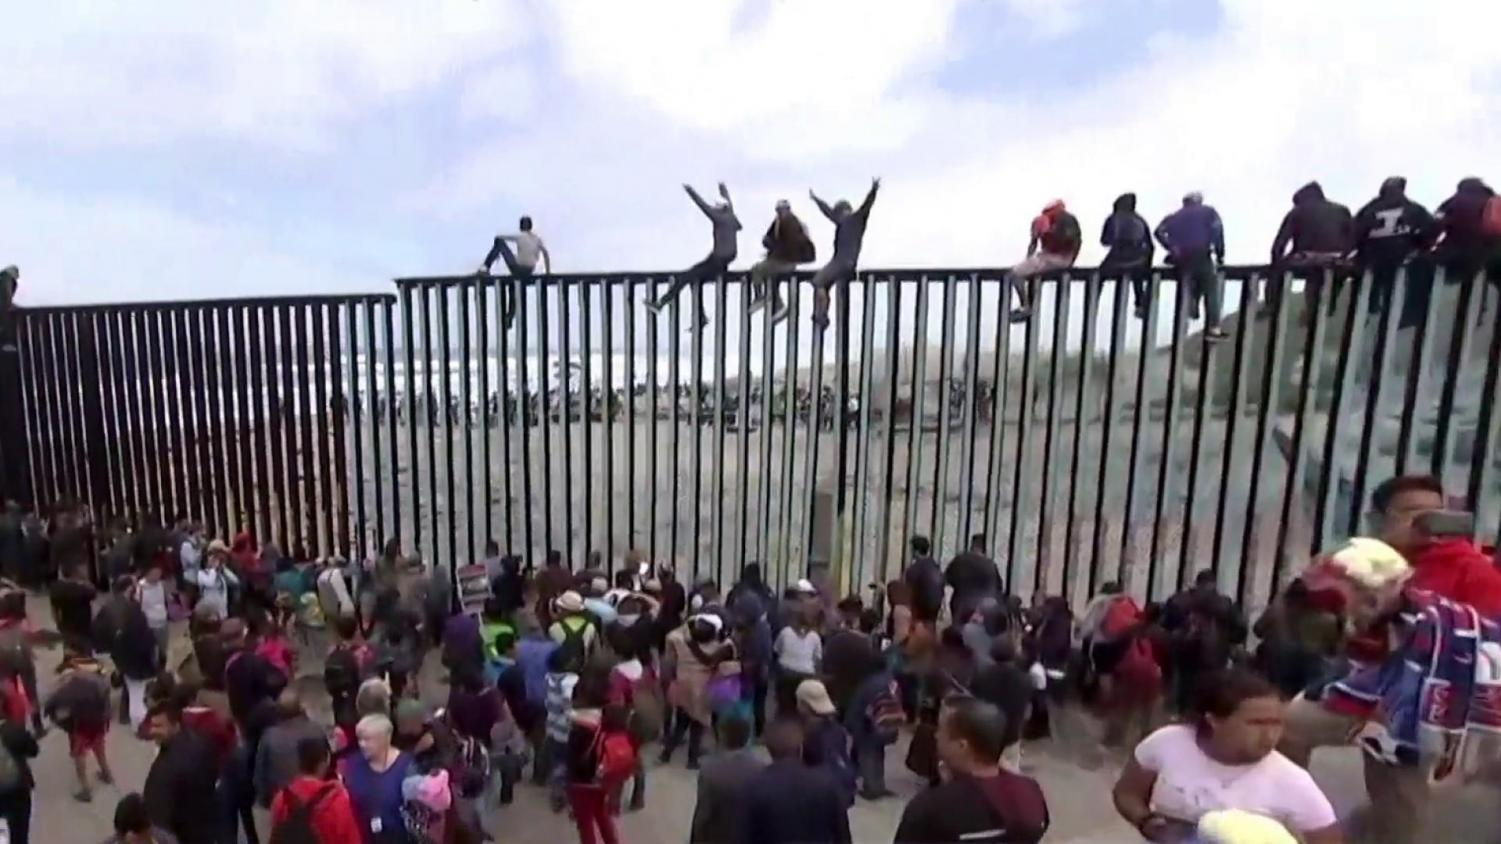 Migrants attempt to cross tall fences at the U.S.-Mexico border (Image courtesy of NBC).